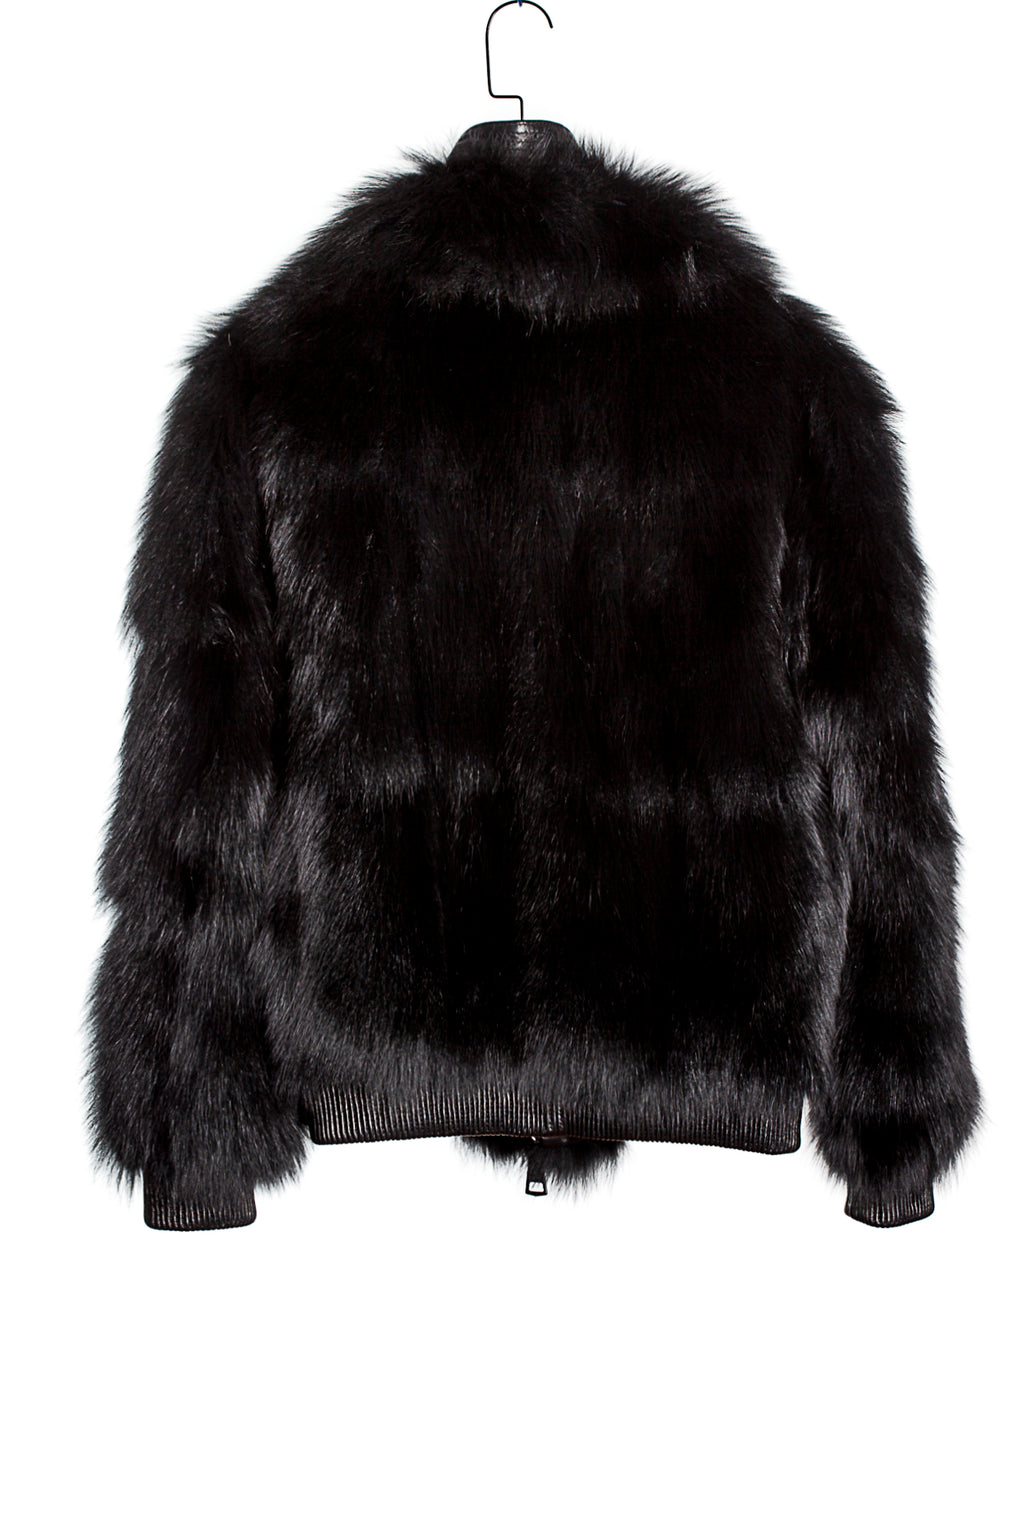 UP-CYCLED FOX FUR JACKET